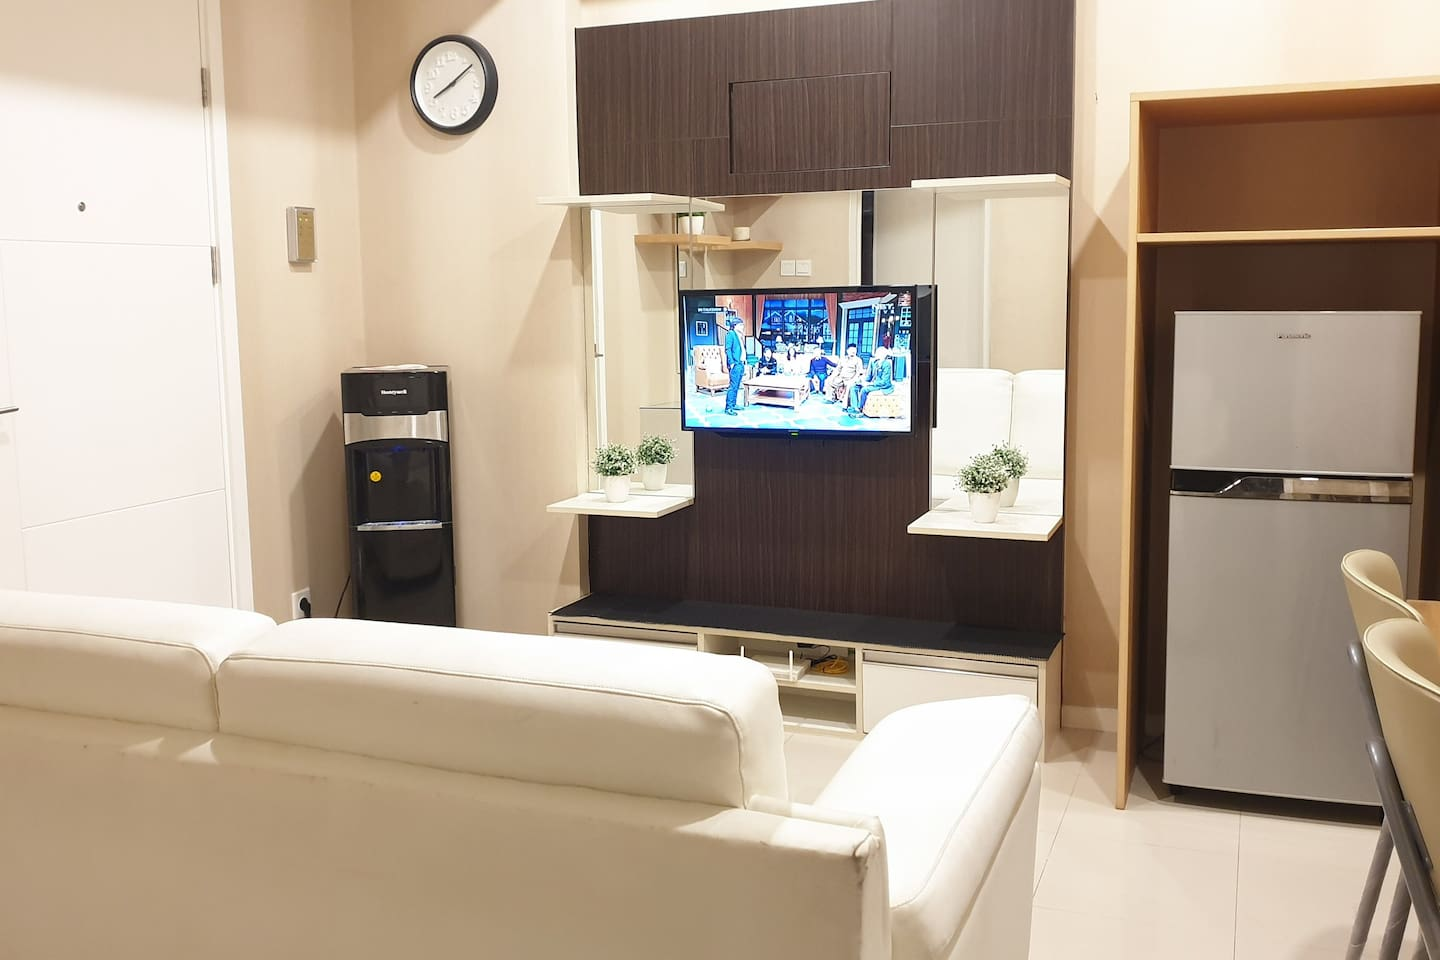 Enjoy CABLE TV while sitting in the sofa and also FREE HIGH SPEED WIFI 20 MBPS. Free water in hot and cold dispenser. Make yourself comfortable, and enjoy BANDUNG. Complete Facilities.